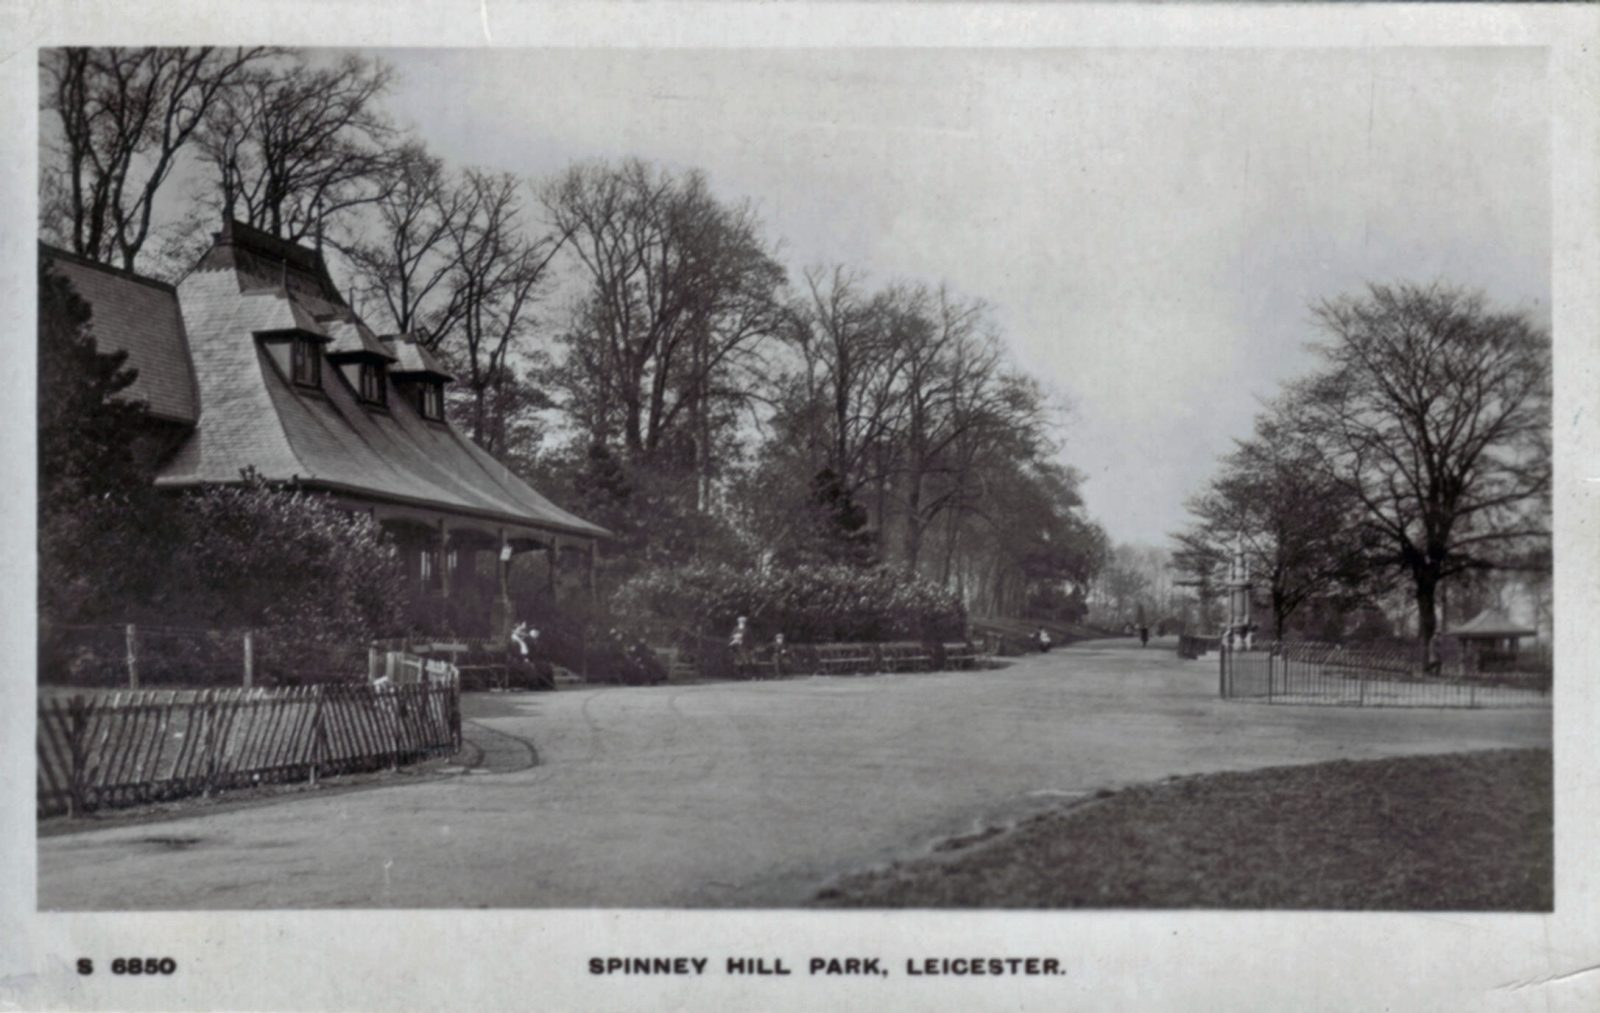 Spinney Hill Park, Leicester. 1901-1920: The Pavilion and broad avenue. Posted 1904-10 (File:1242)